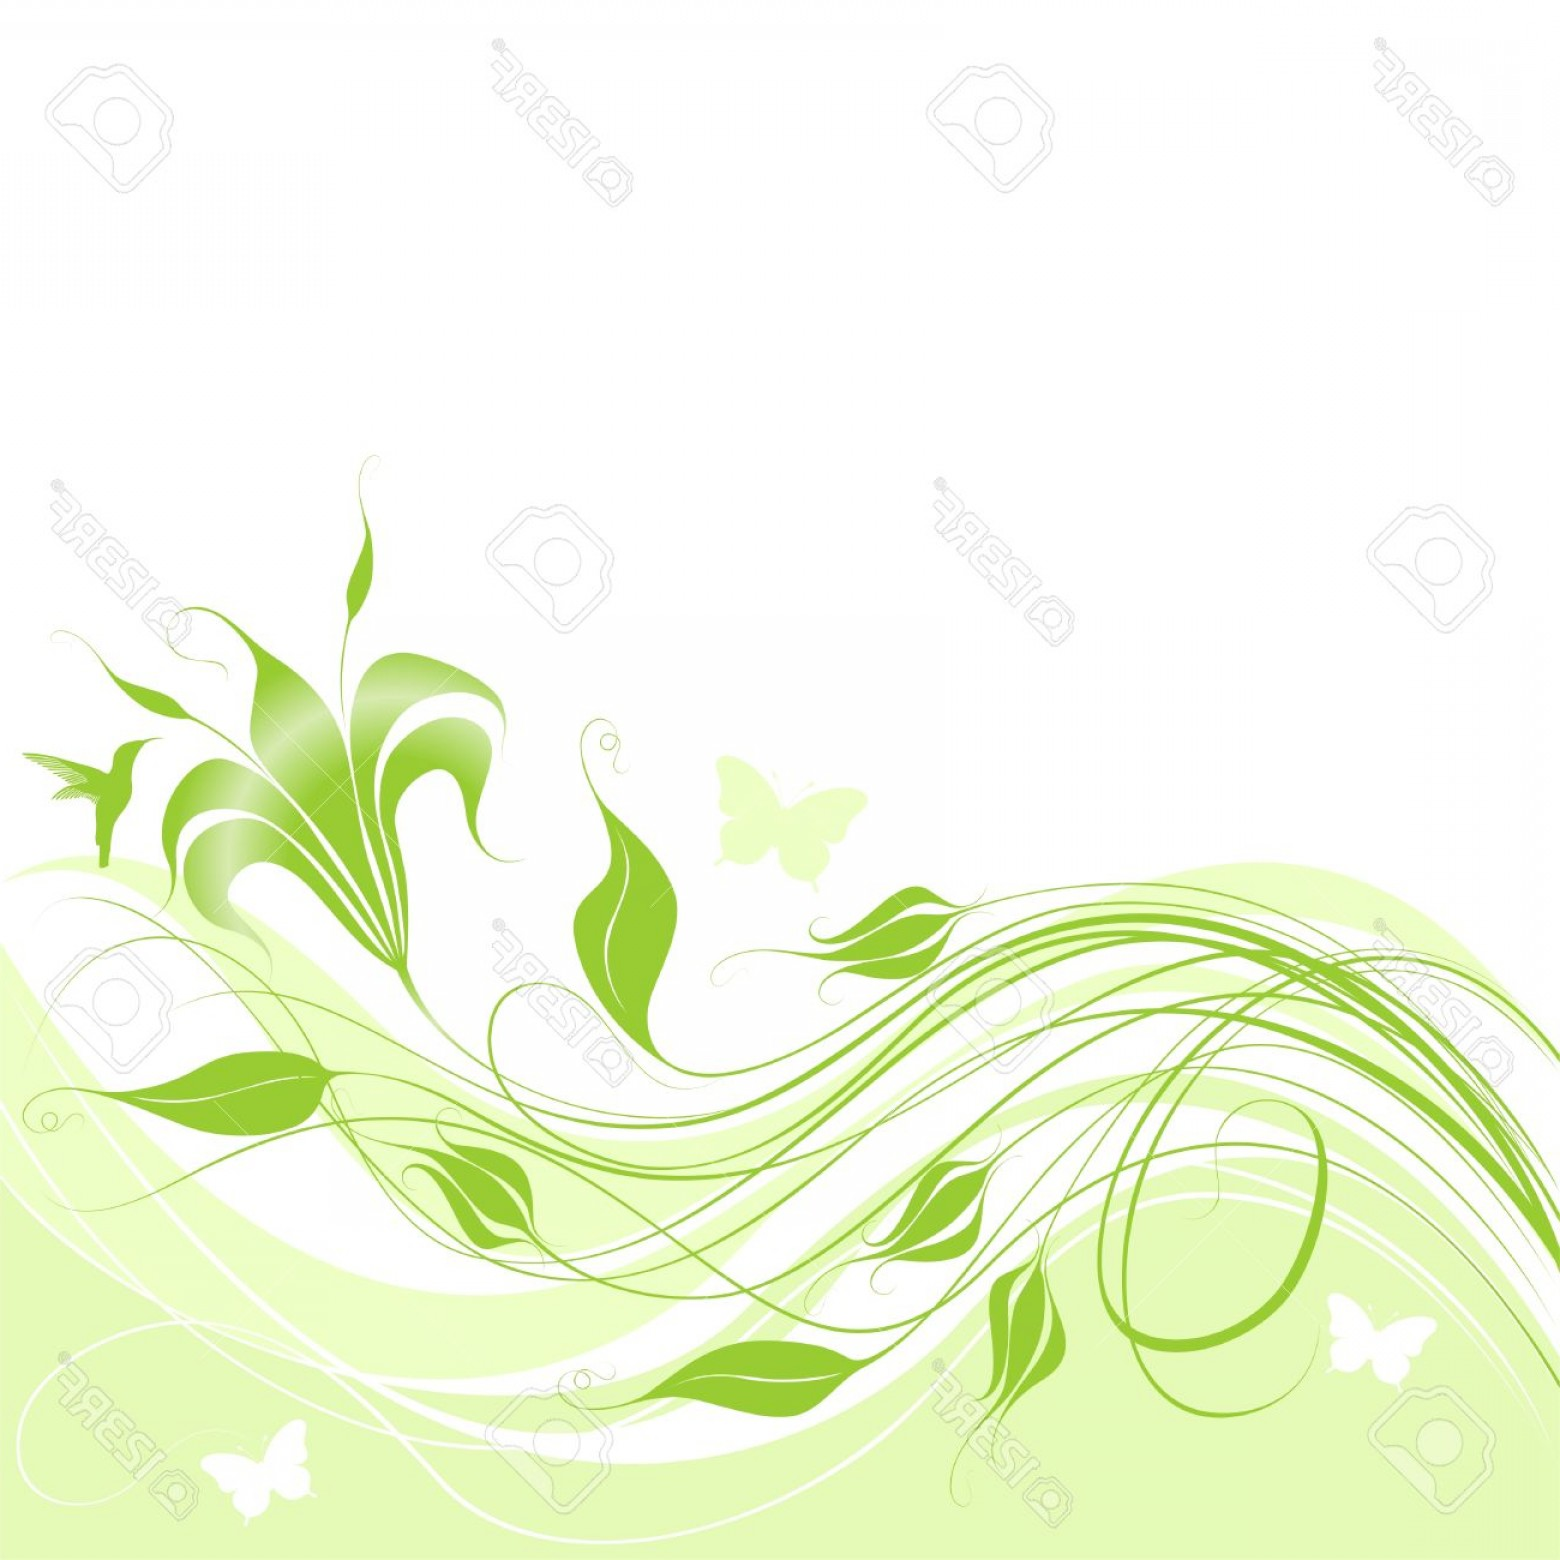 Green Flower Vector Designs: Photoabstract Background With Green Flower Elements